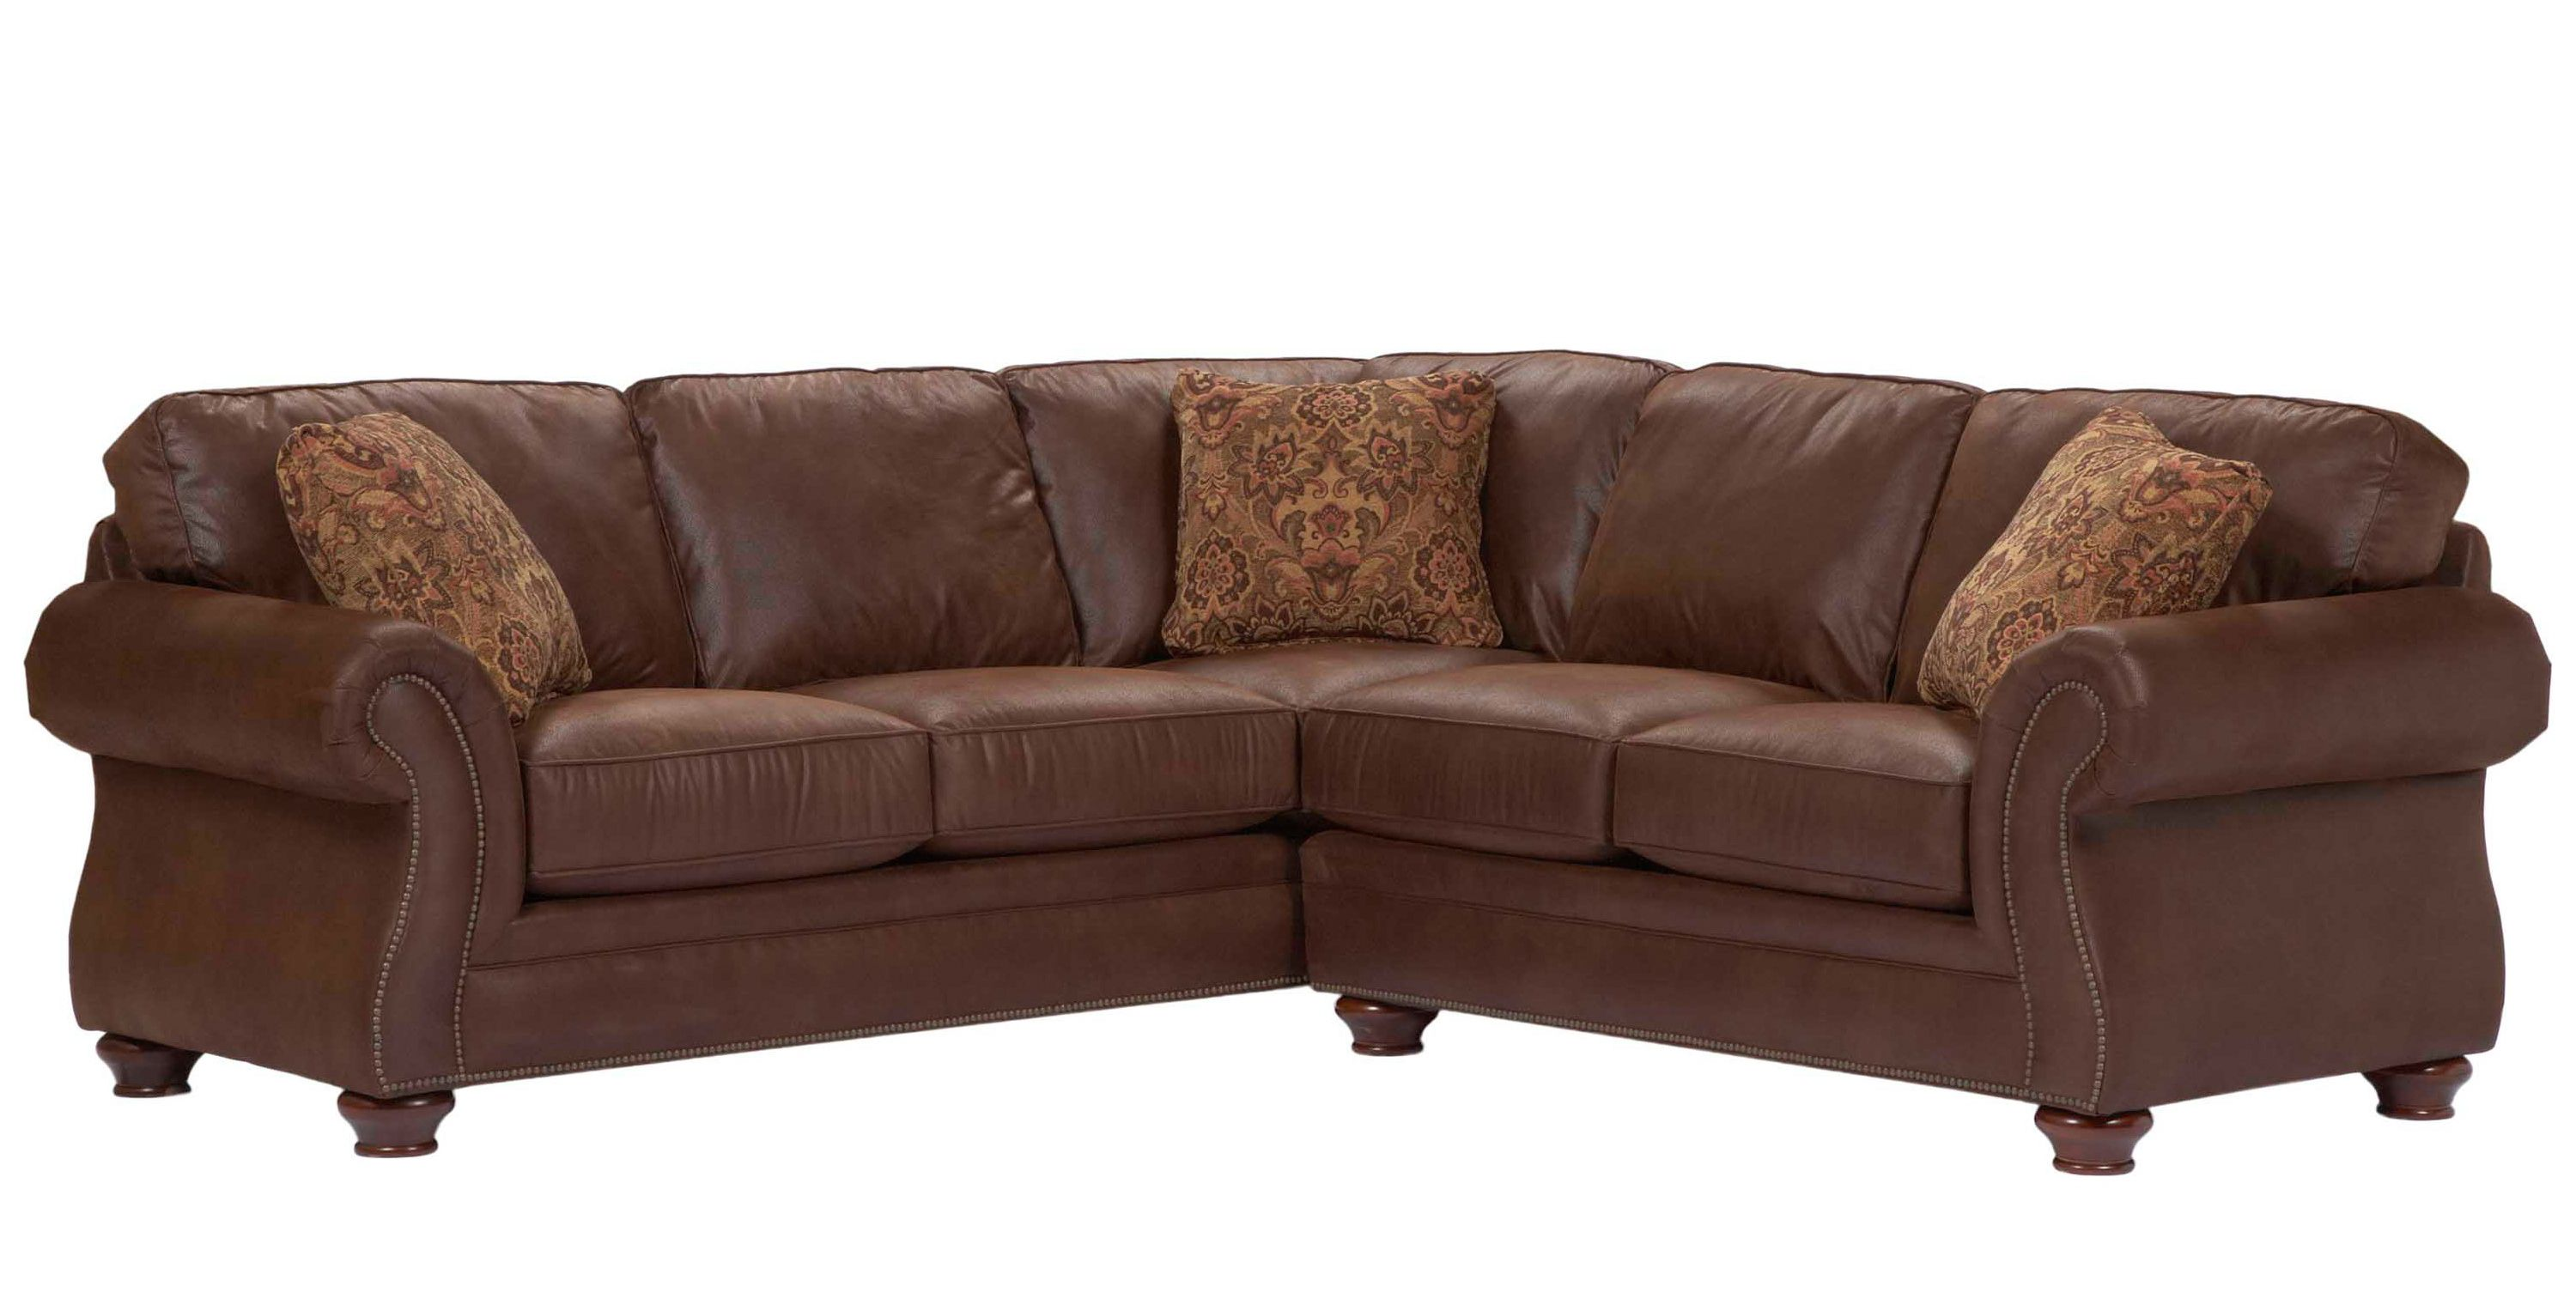 Broyhill Landon Sofa Bed Under 300 Dollars Sofas Gradschoolfairs